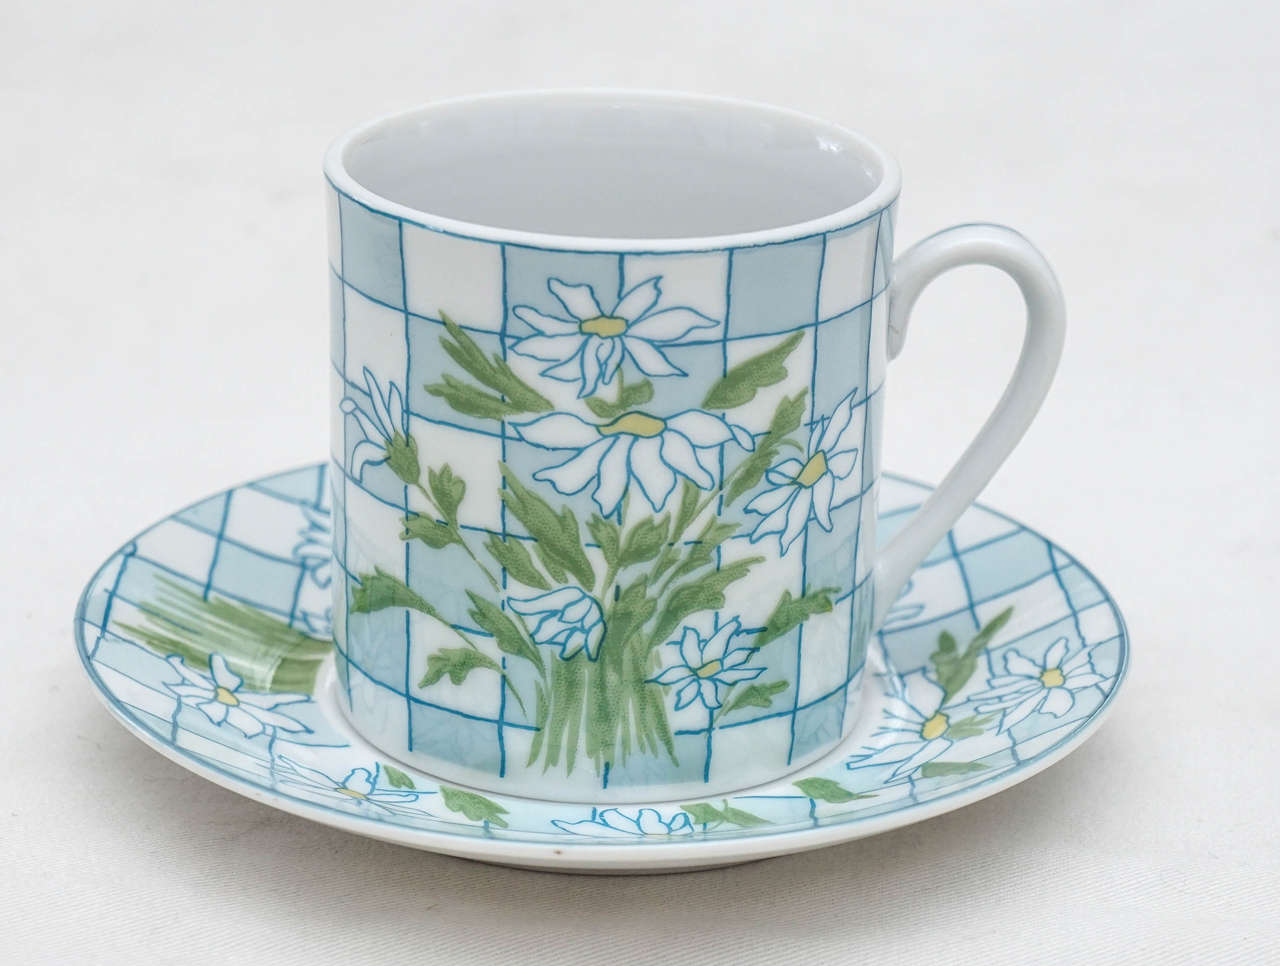 Daisies and Checkerboard Decorated Porcelain Breakfast Set In Excellent Condition For Sale In Hudson, NY